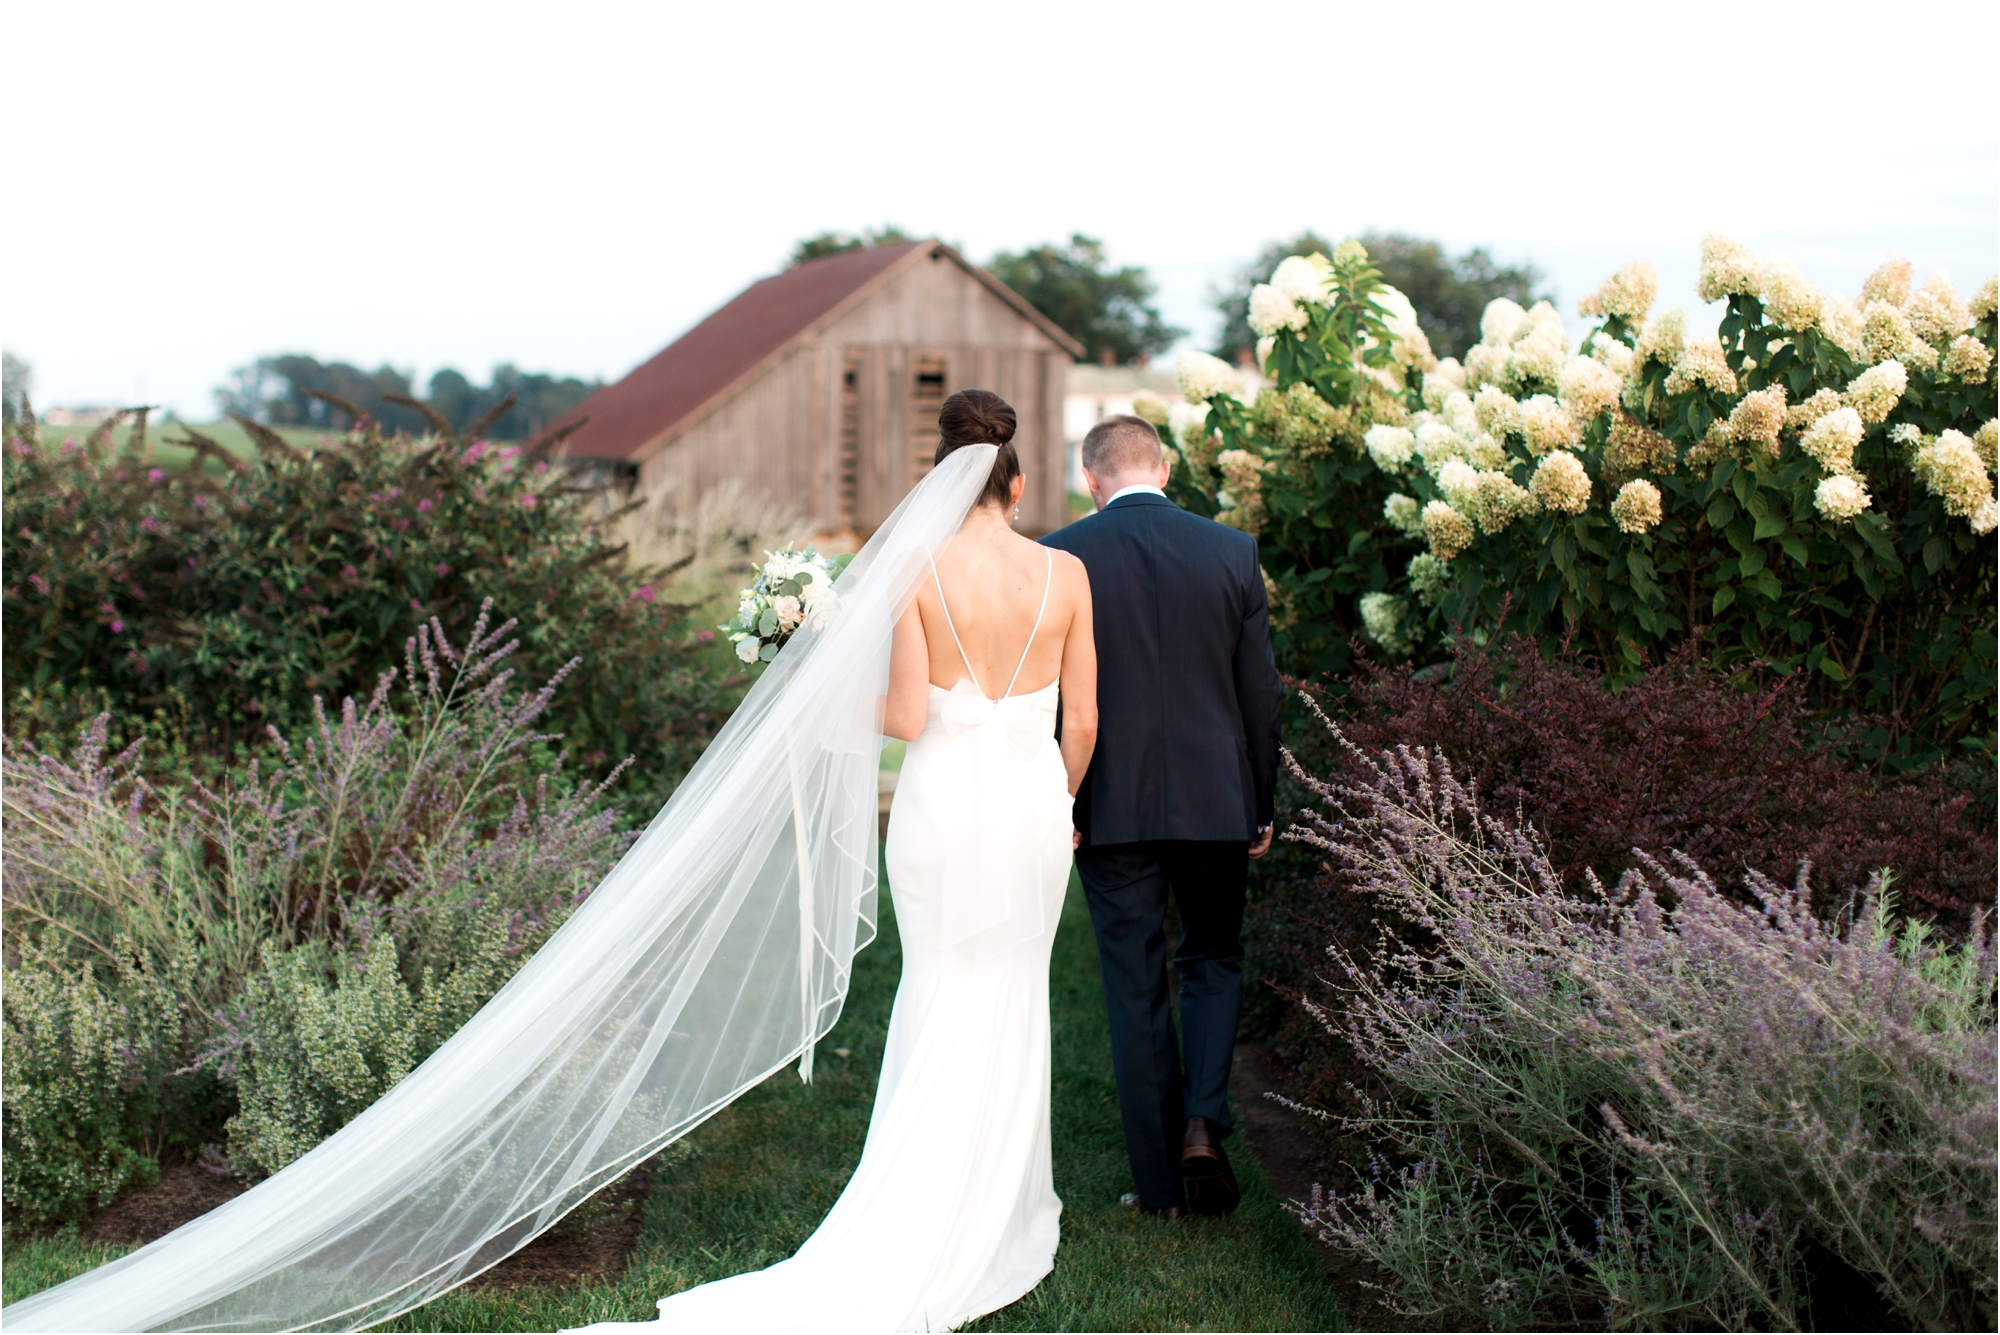 michelle-george-early-mountain-vineyard-charlottesville-virginia-wedding-photos_0041.jpg